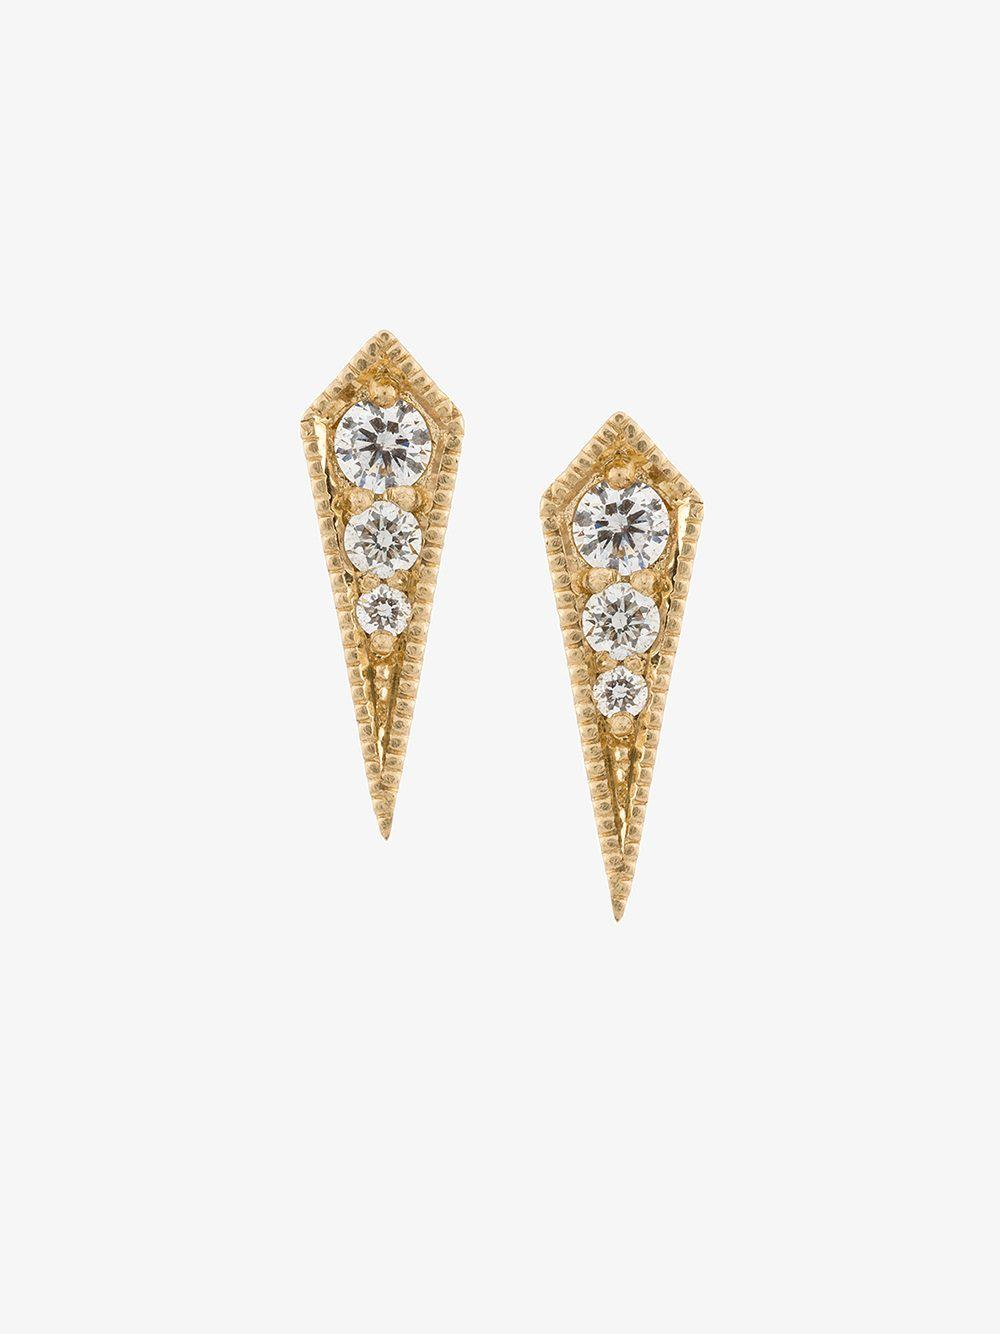 18kt gold Kite diamond stud earrings - Metallic Lizzie Mandler WHWkt